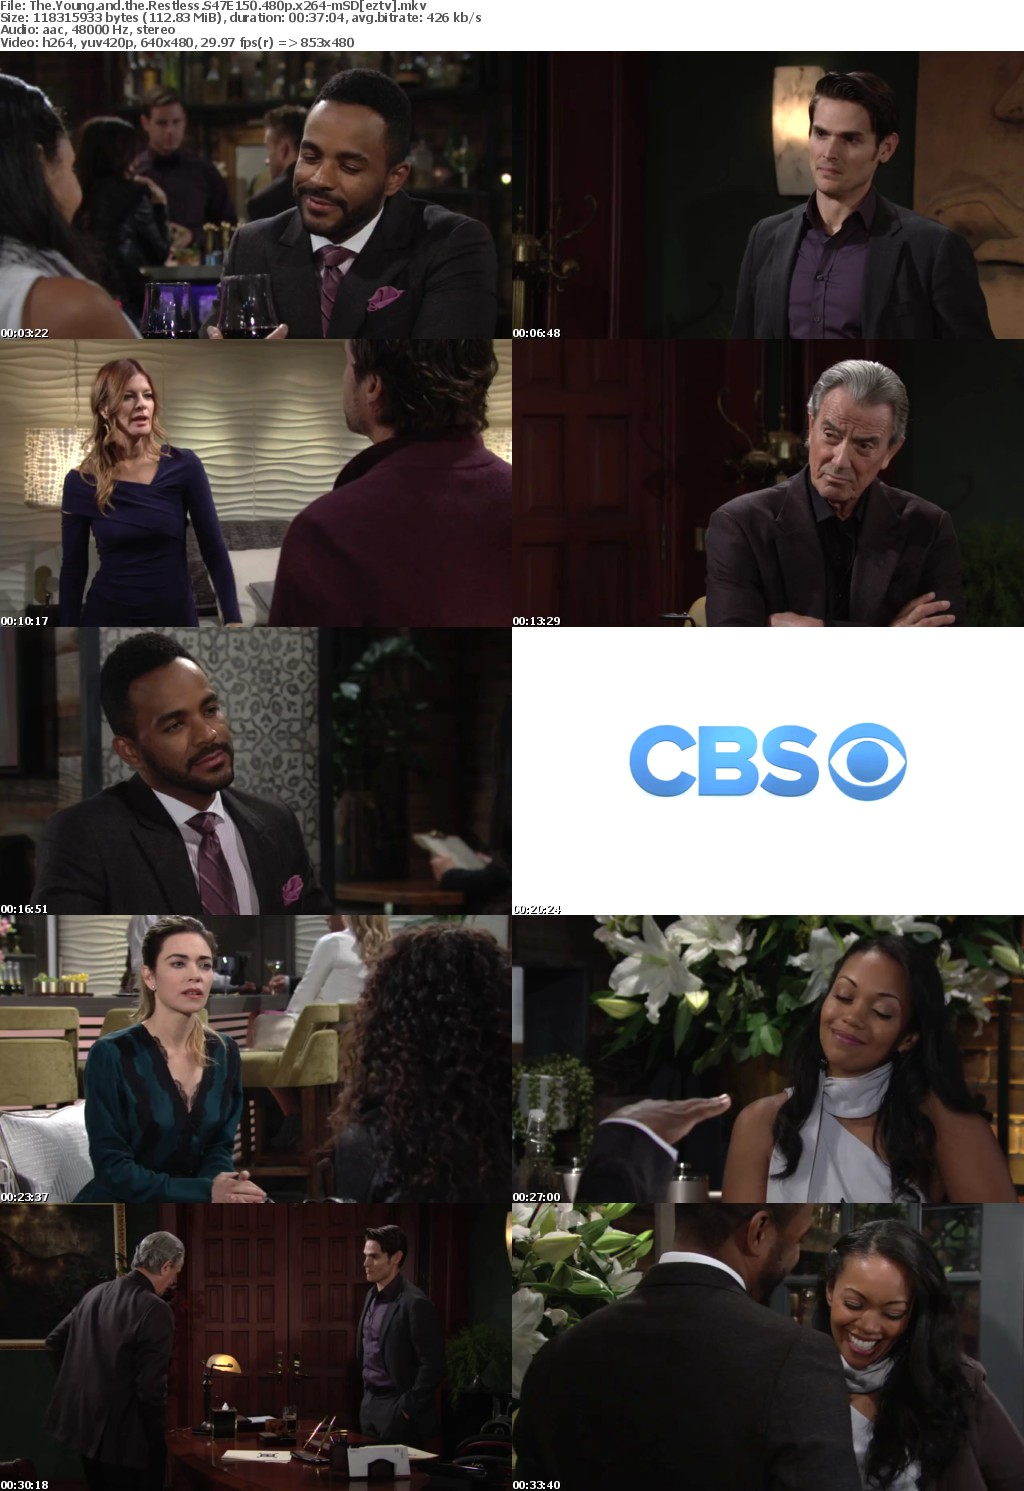 The Young and the Restless S47E150 480p x264-mSD